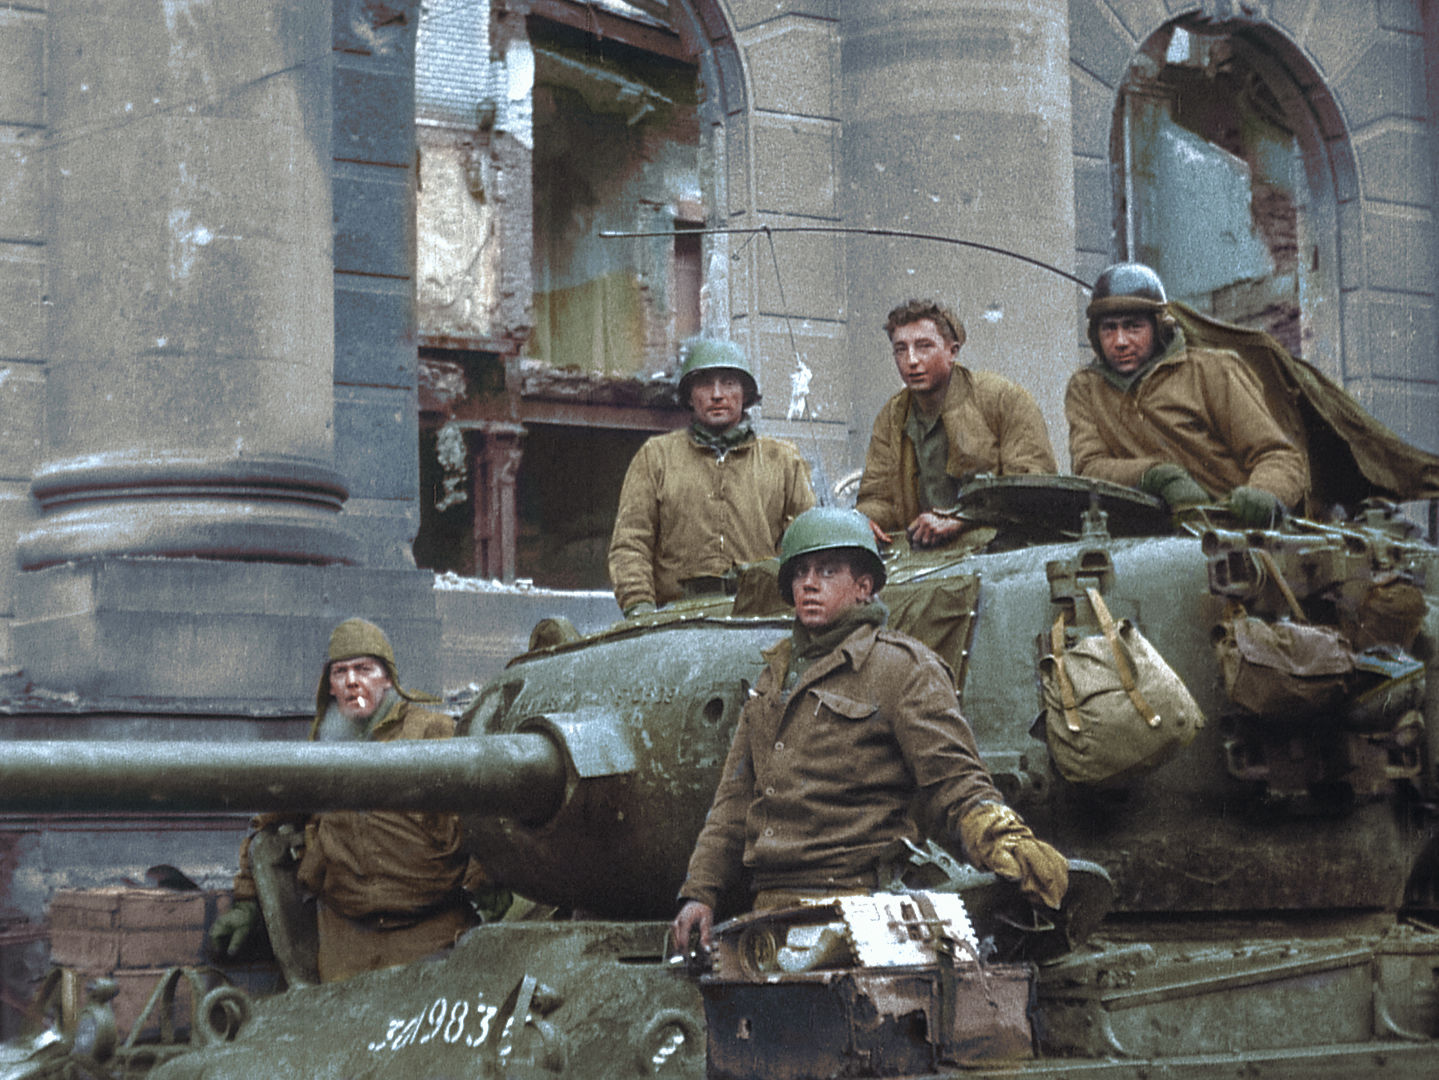 WW2 Veteran – 1st Armored Division – Talks about his Experiences